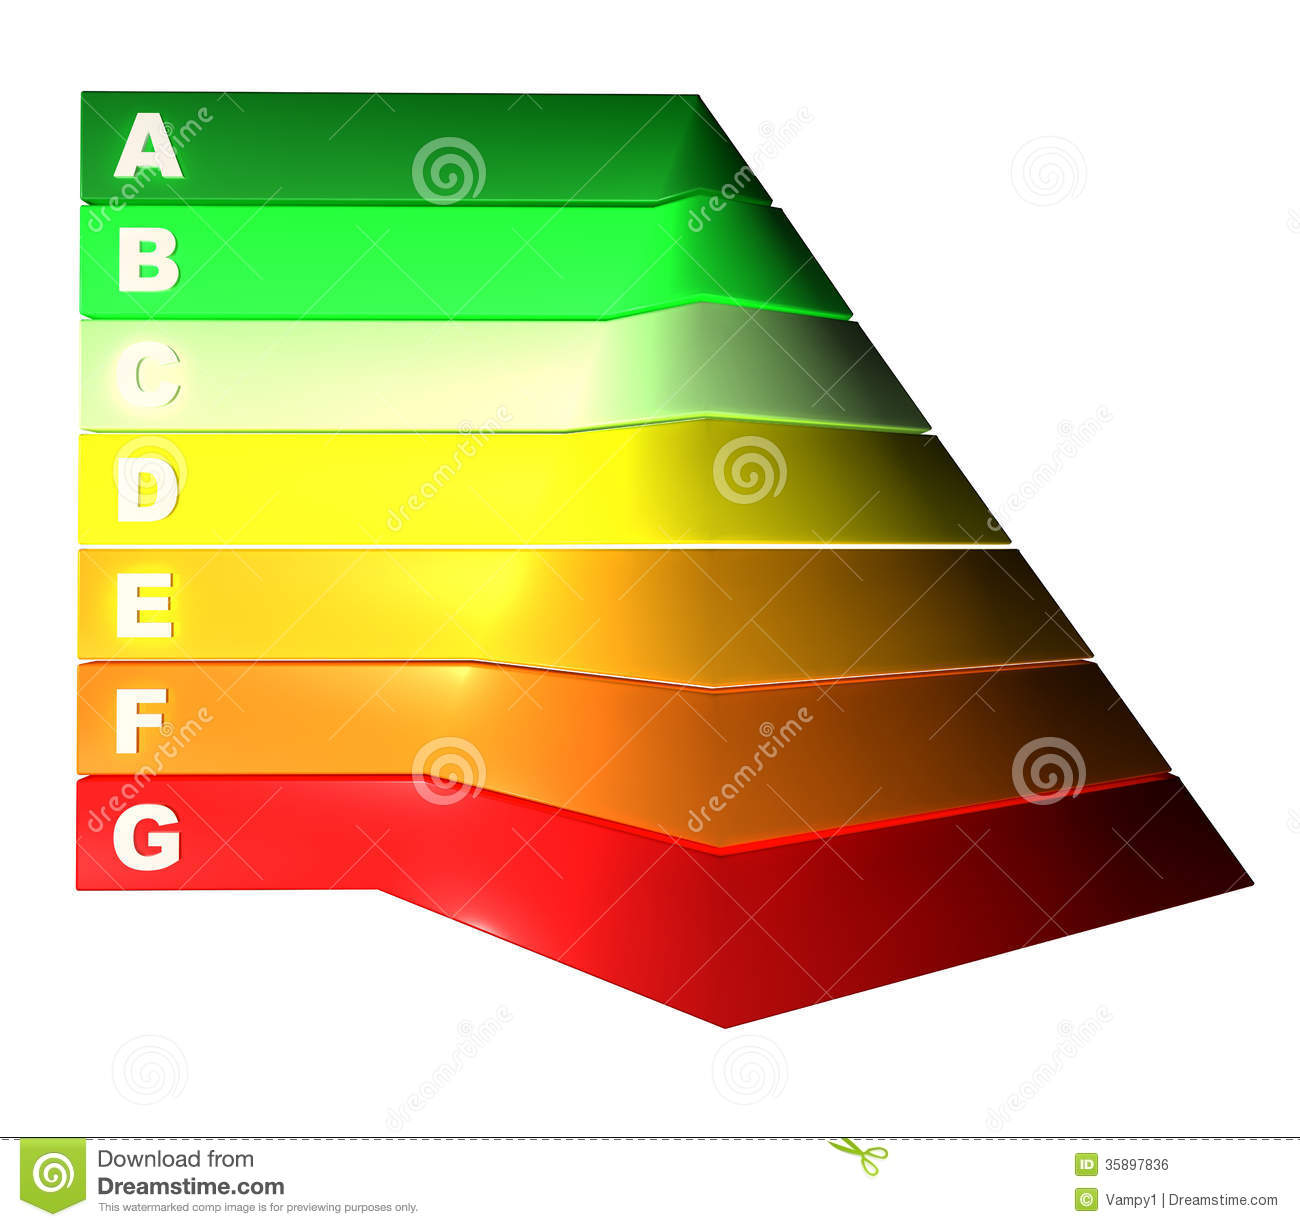 Examples Business Pyramid Illustration, Energy Pyramid Stock